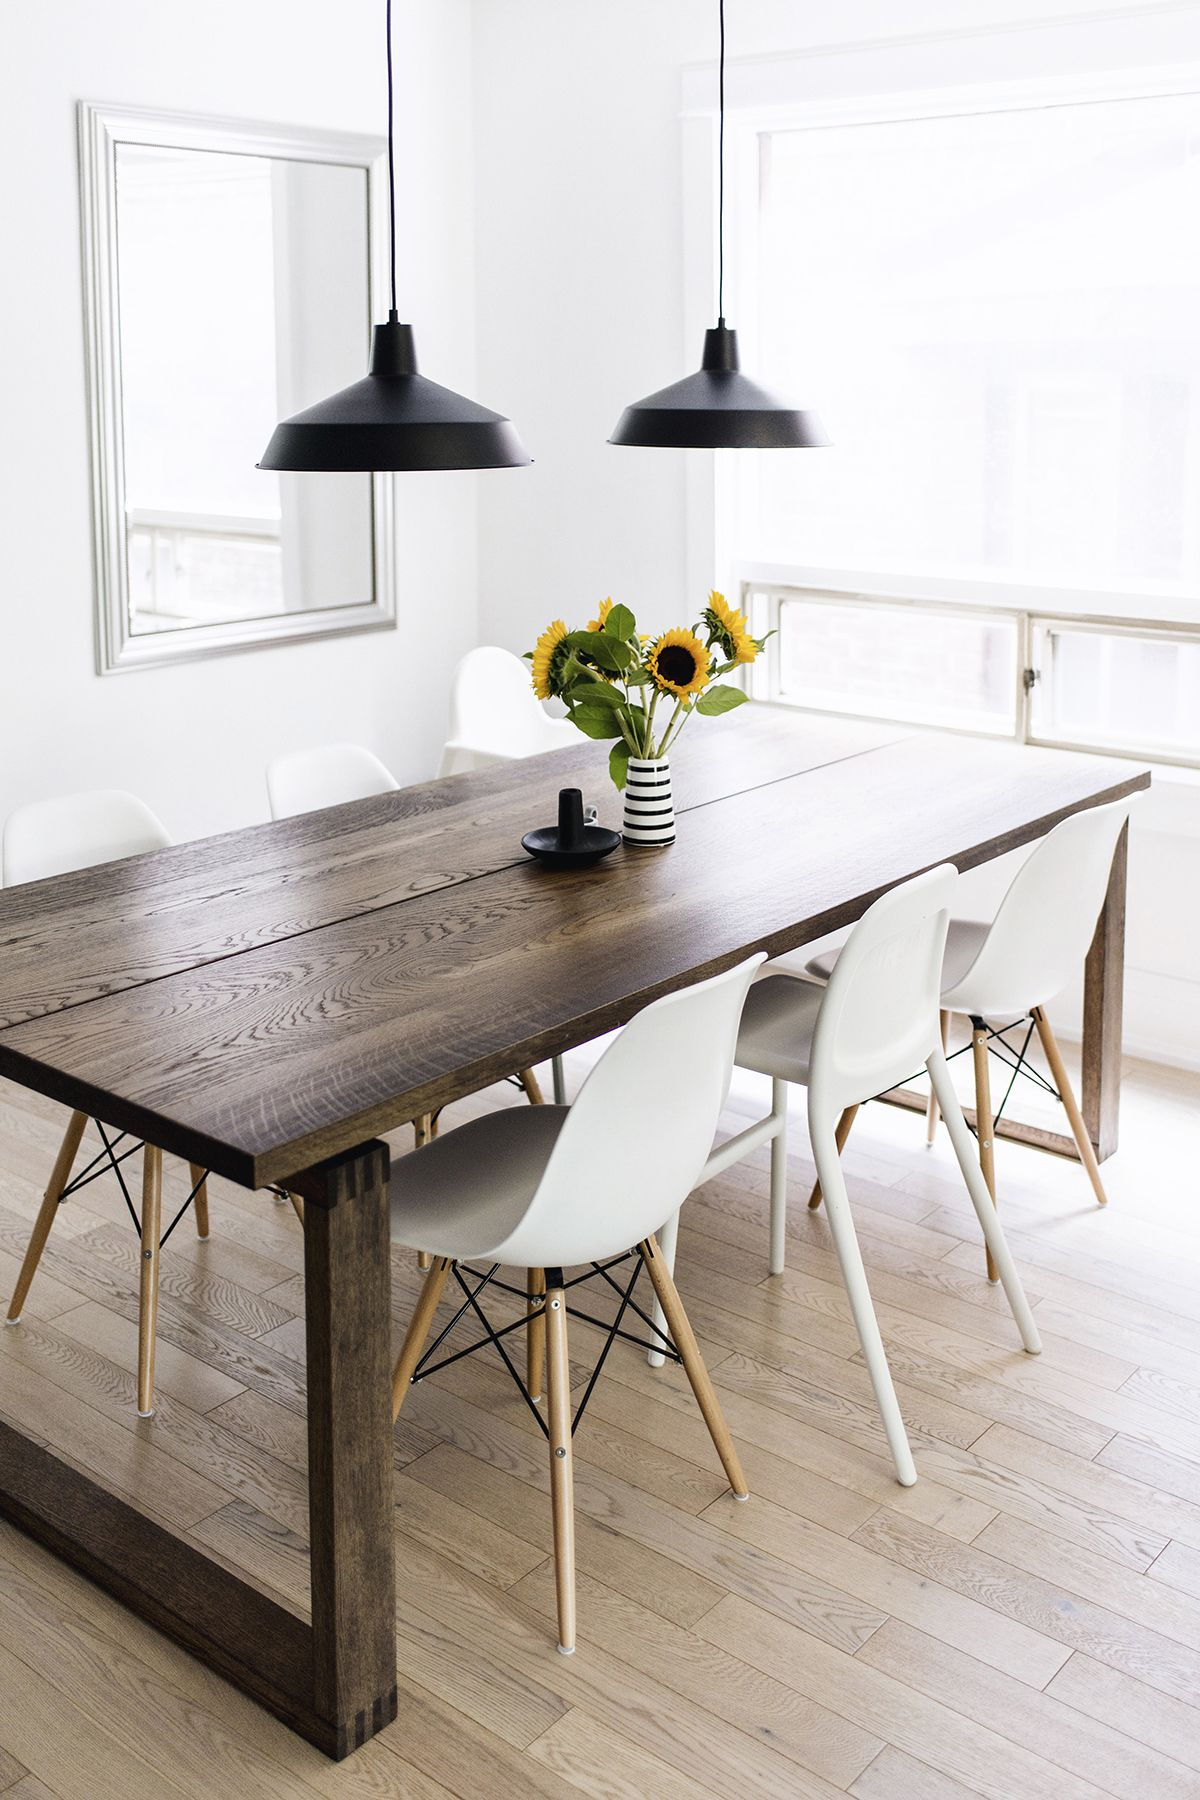 House Tour Dining Room Scandinavian Dining Room Scandinavian Dining Table Dining Room Furniture Design